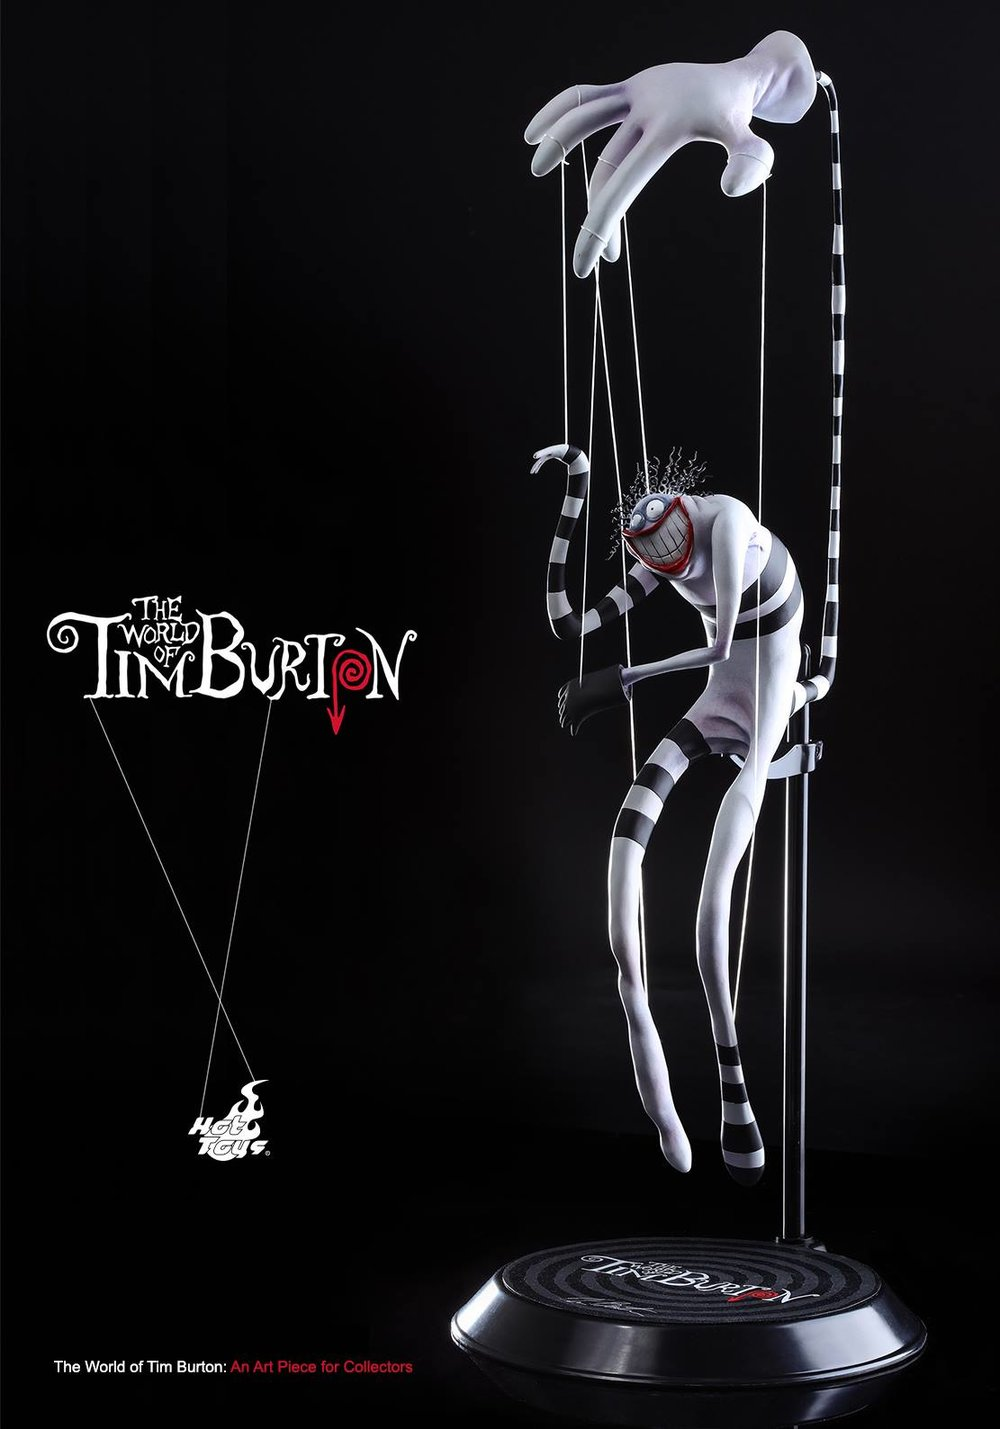 hot-toys-pays-tribute-to-tim-burton-with-creepy-statue-based-on-one-of-his-early-drawings-from-the-80s24